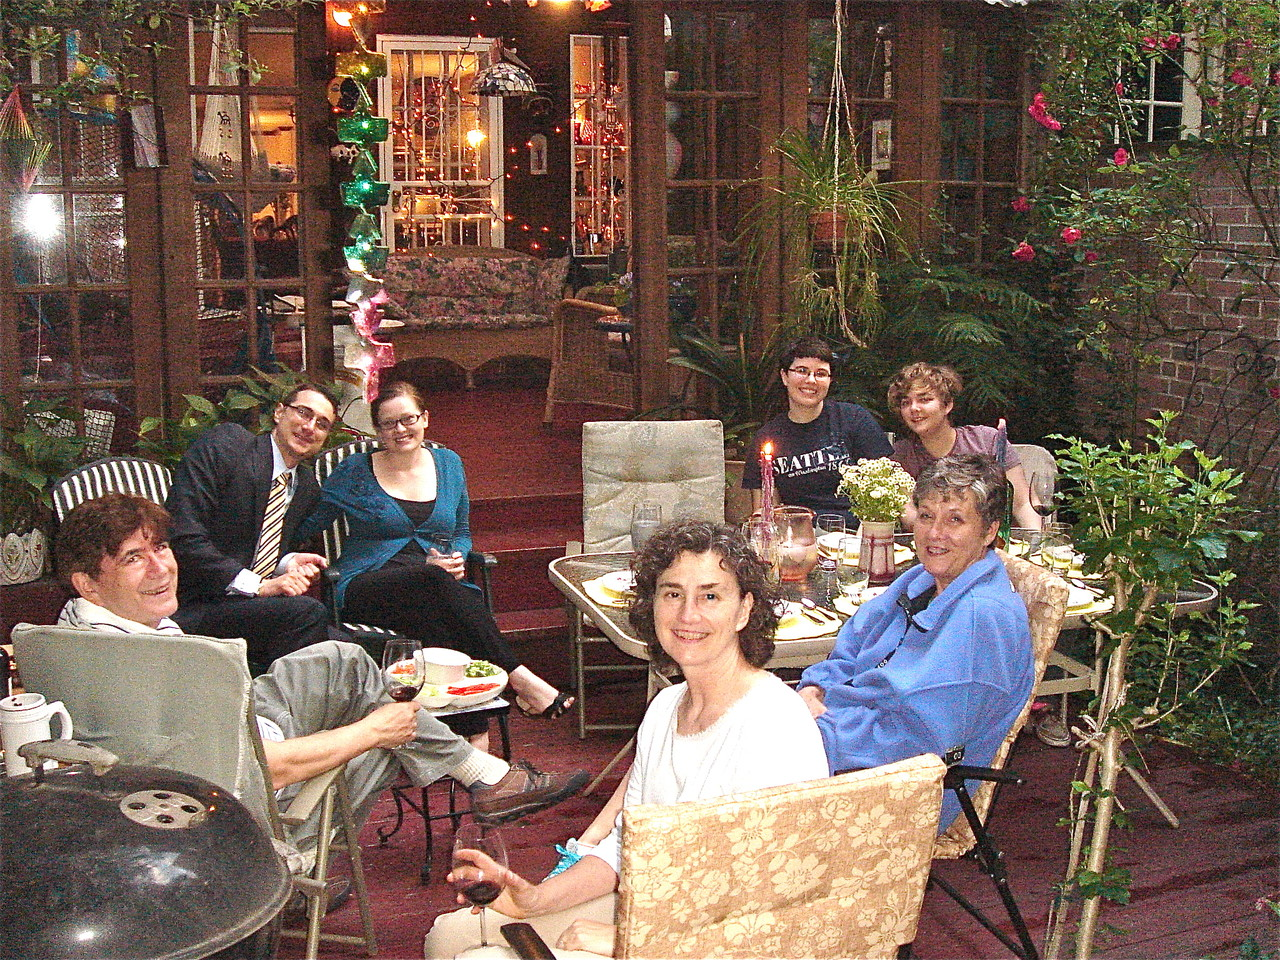 John, Nate, Jenny, Ann, Cindy, Emilea & Kathleen in background, dinner at our house, 6-14-2013